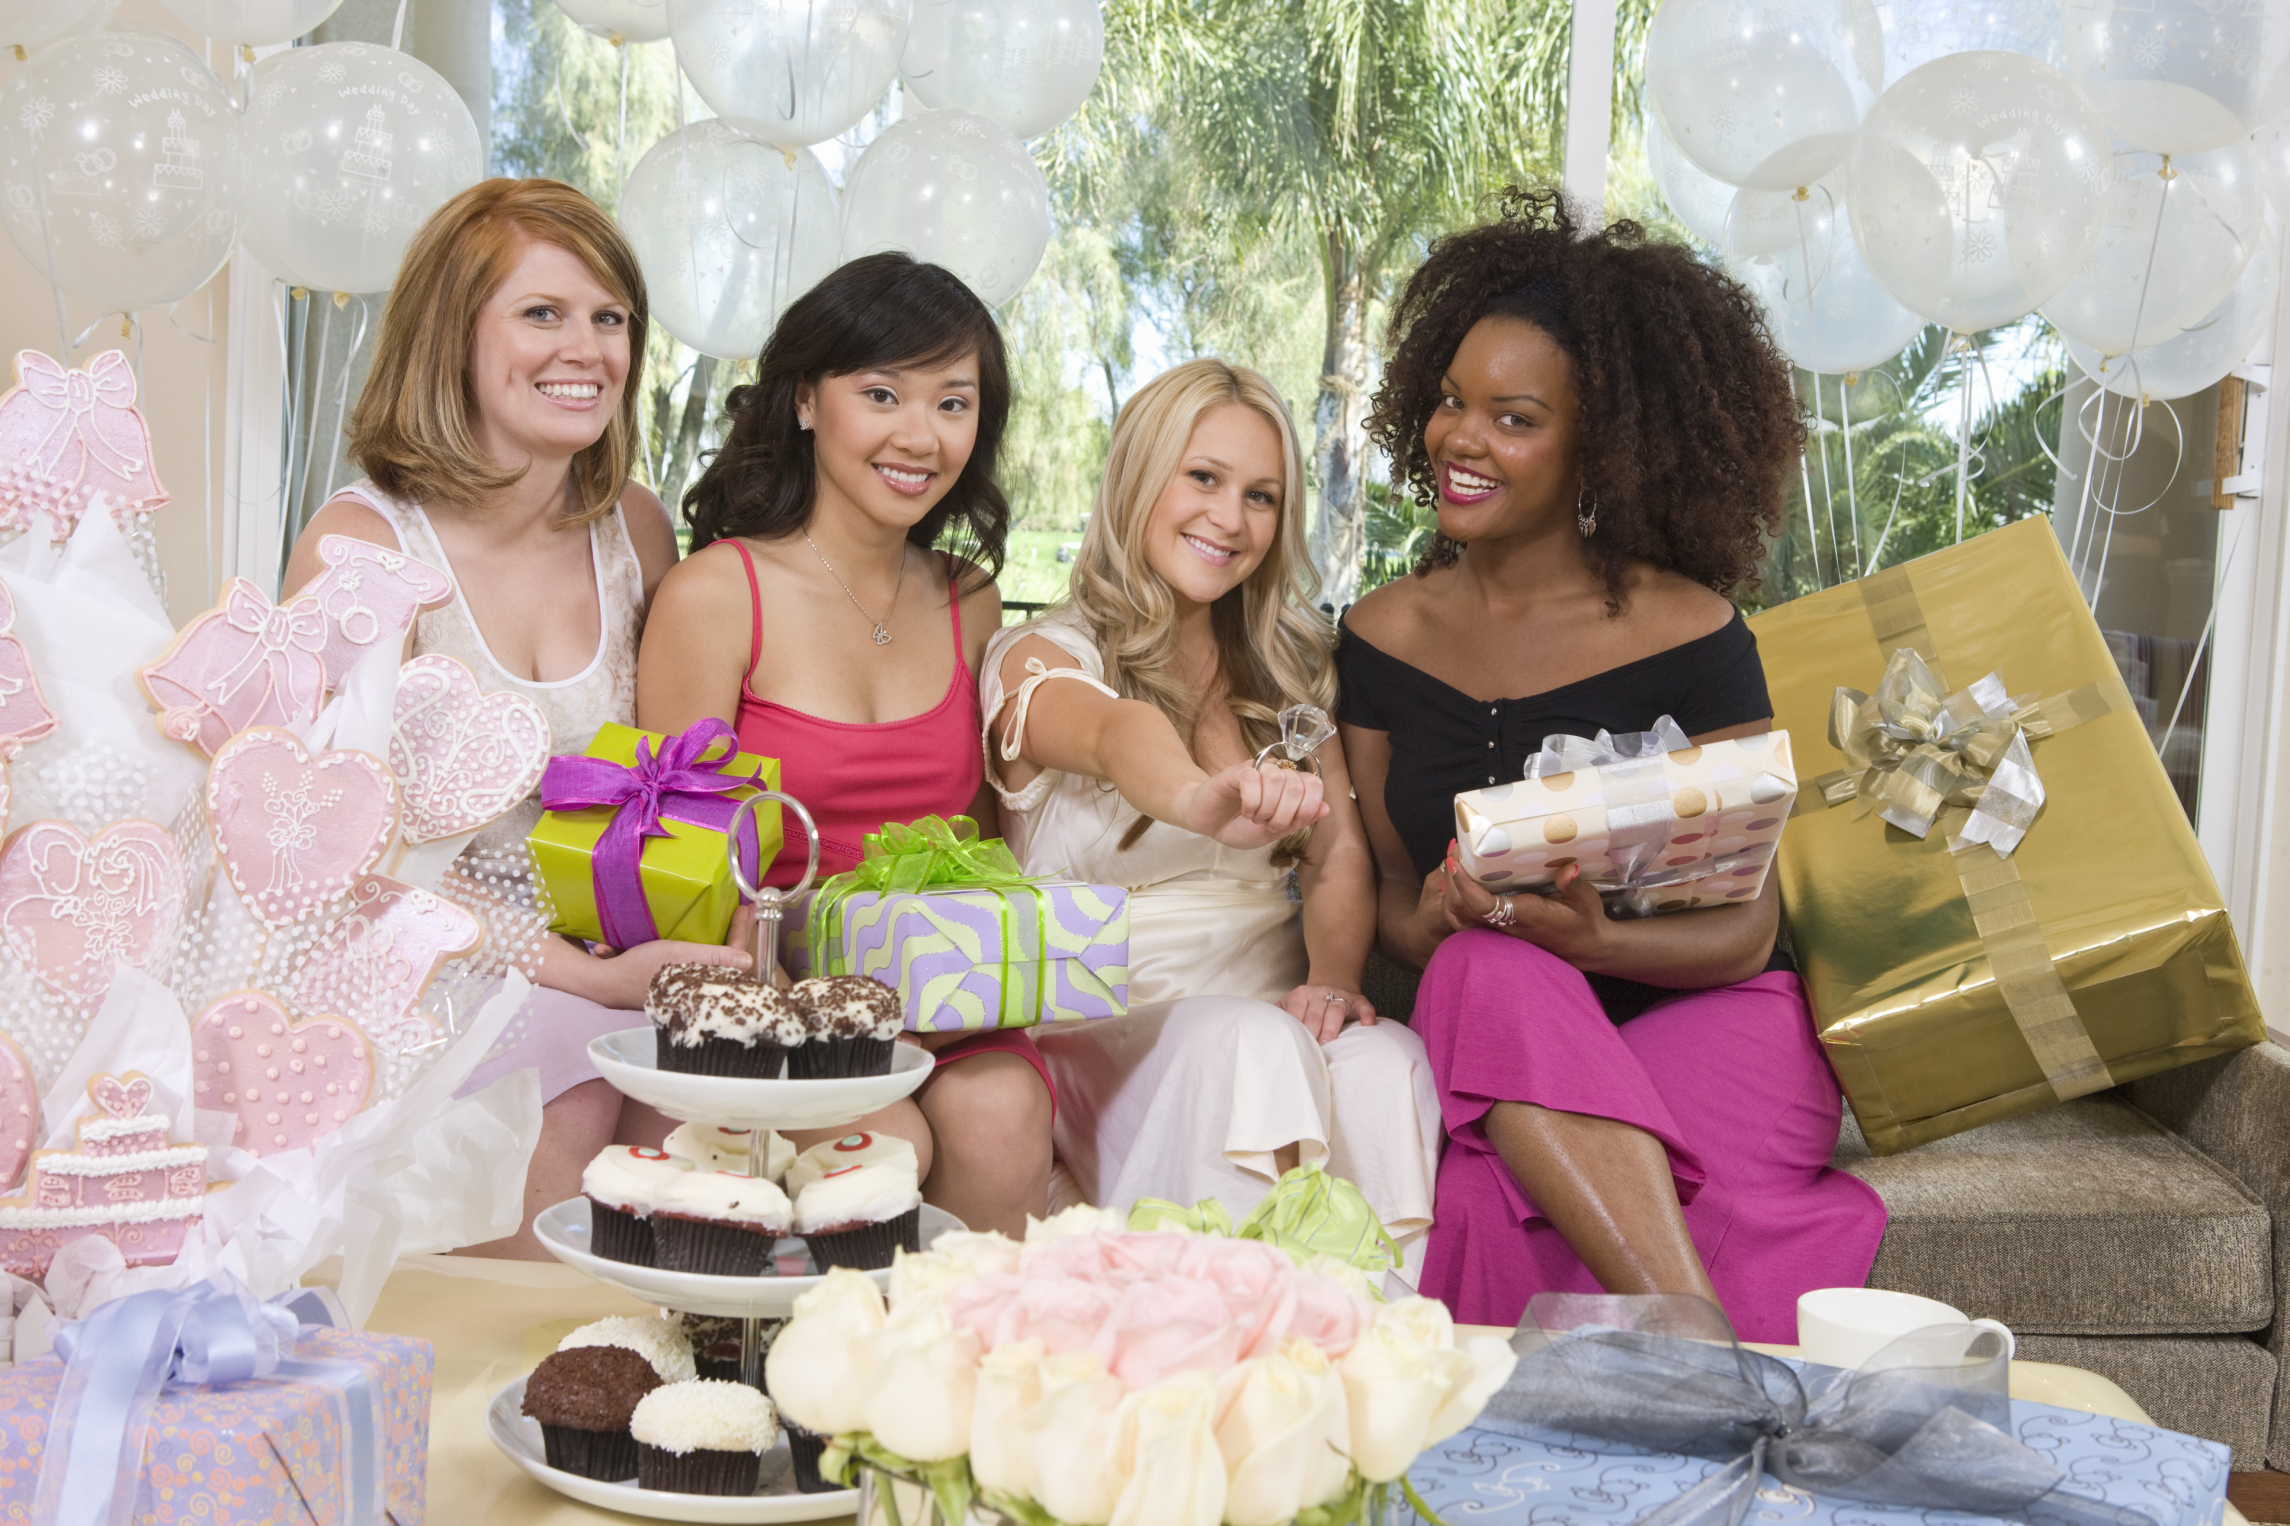 bridal shower etiquette With what is wedding shower